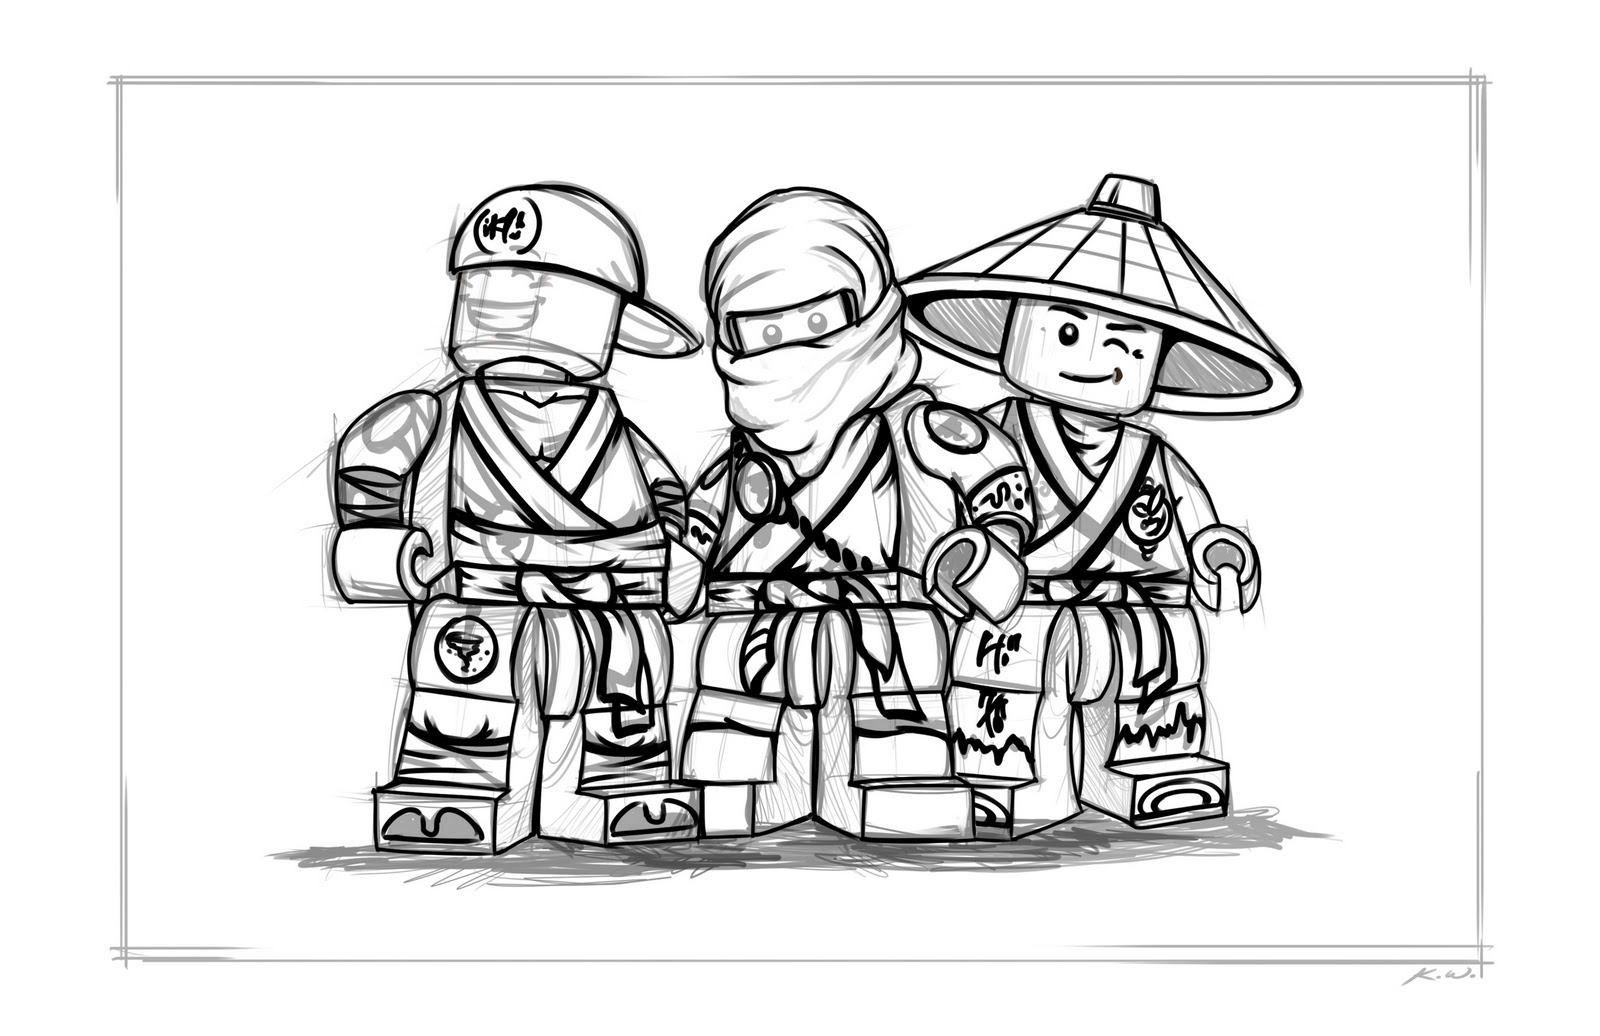 lego colouring in pictures lego marvel coloring pages coloring home pictures in lego colouring